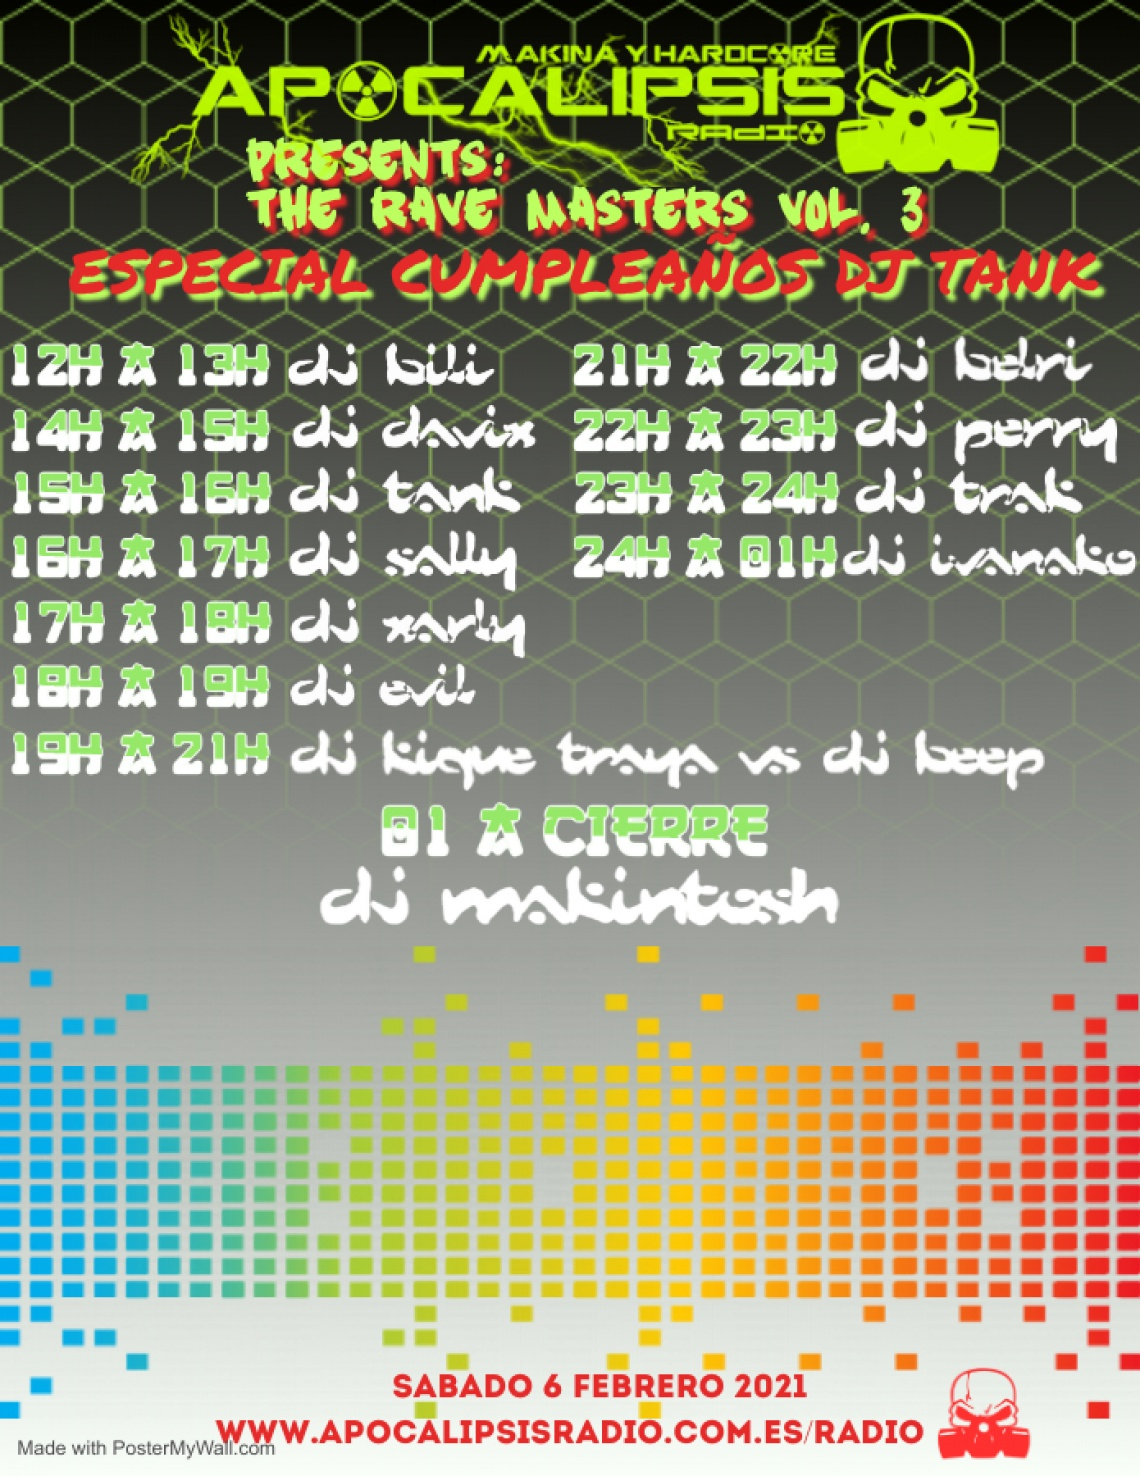 The Rave Masters Vol3